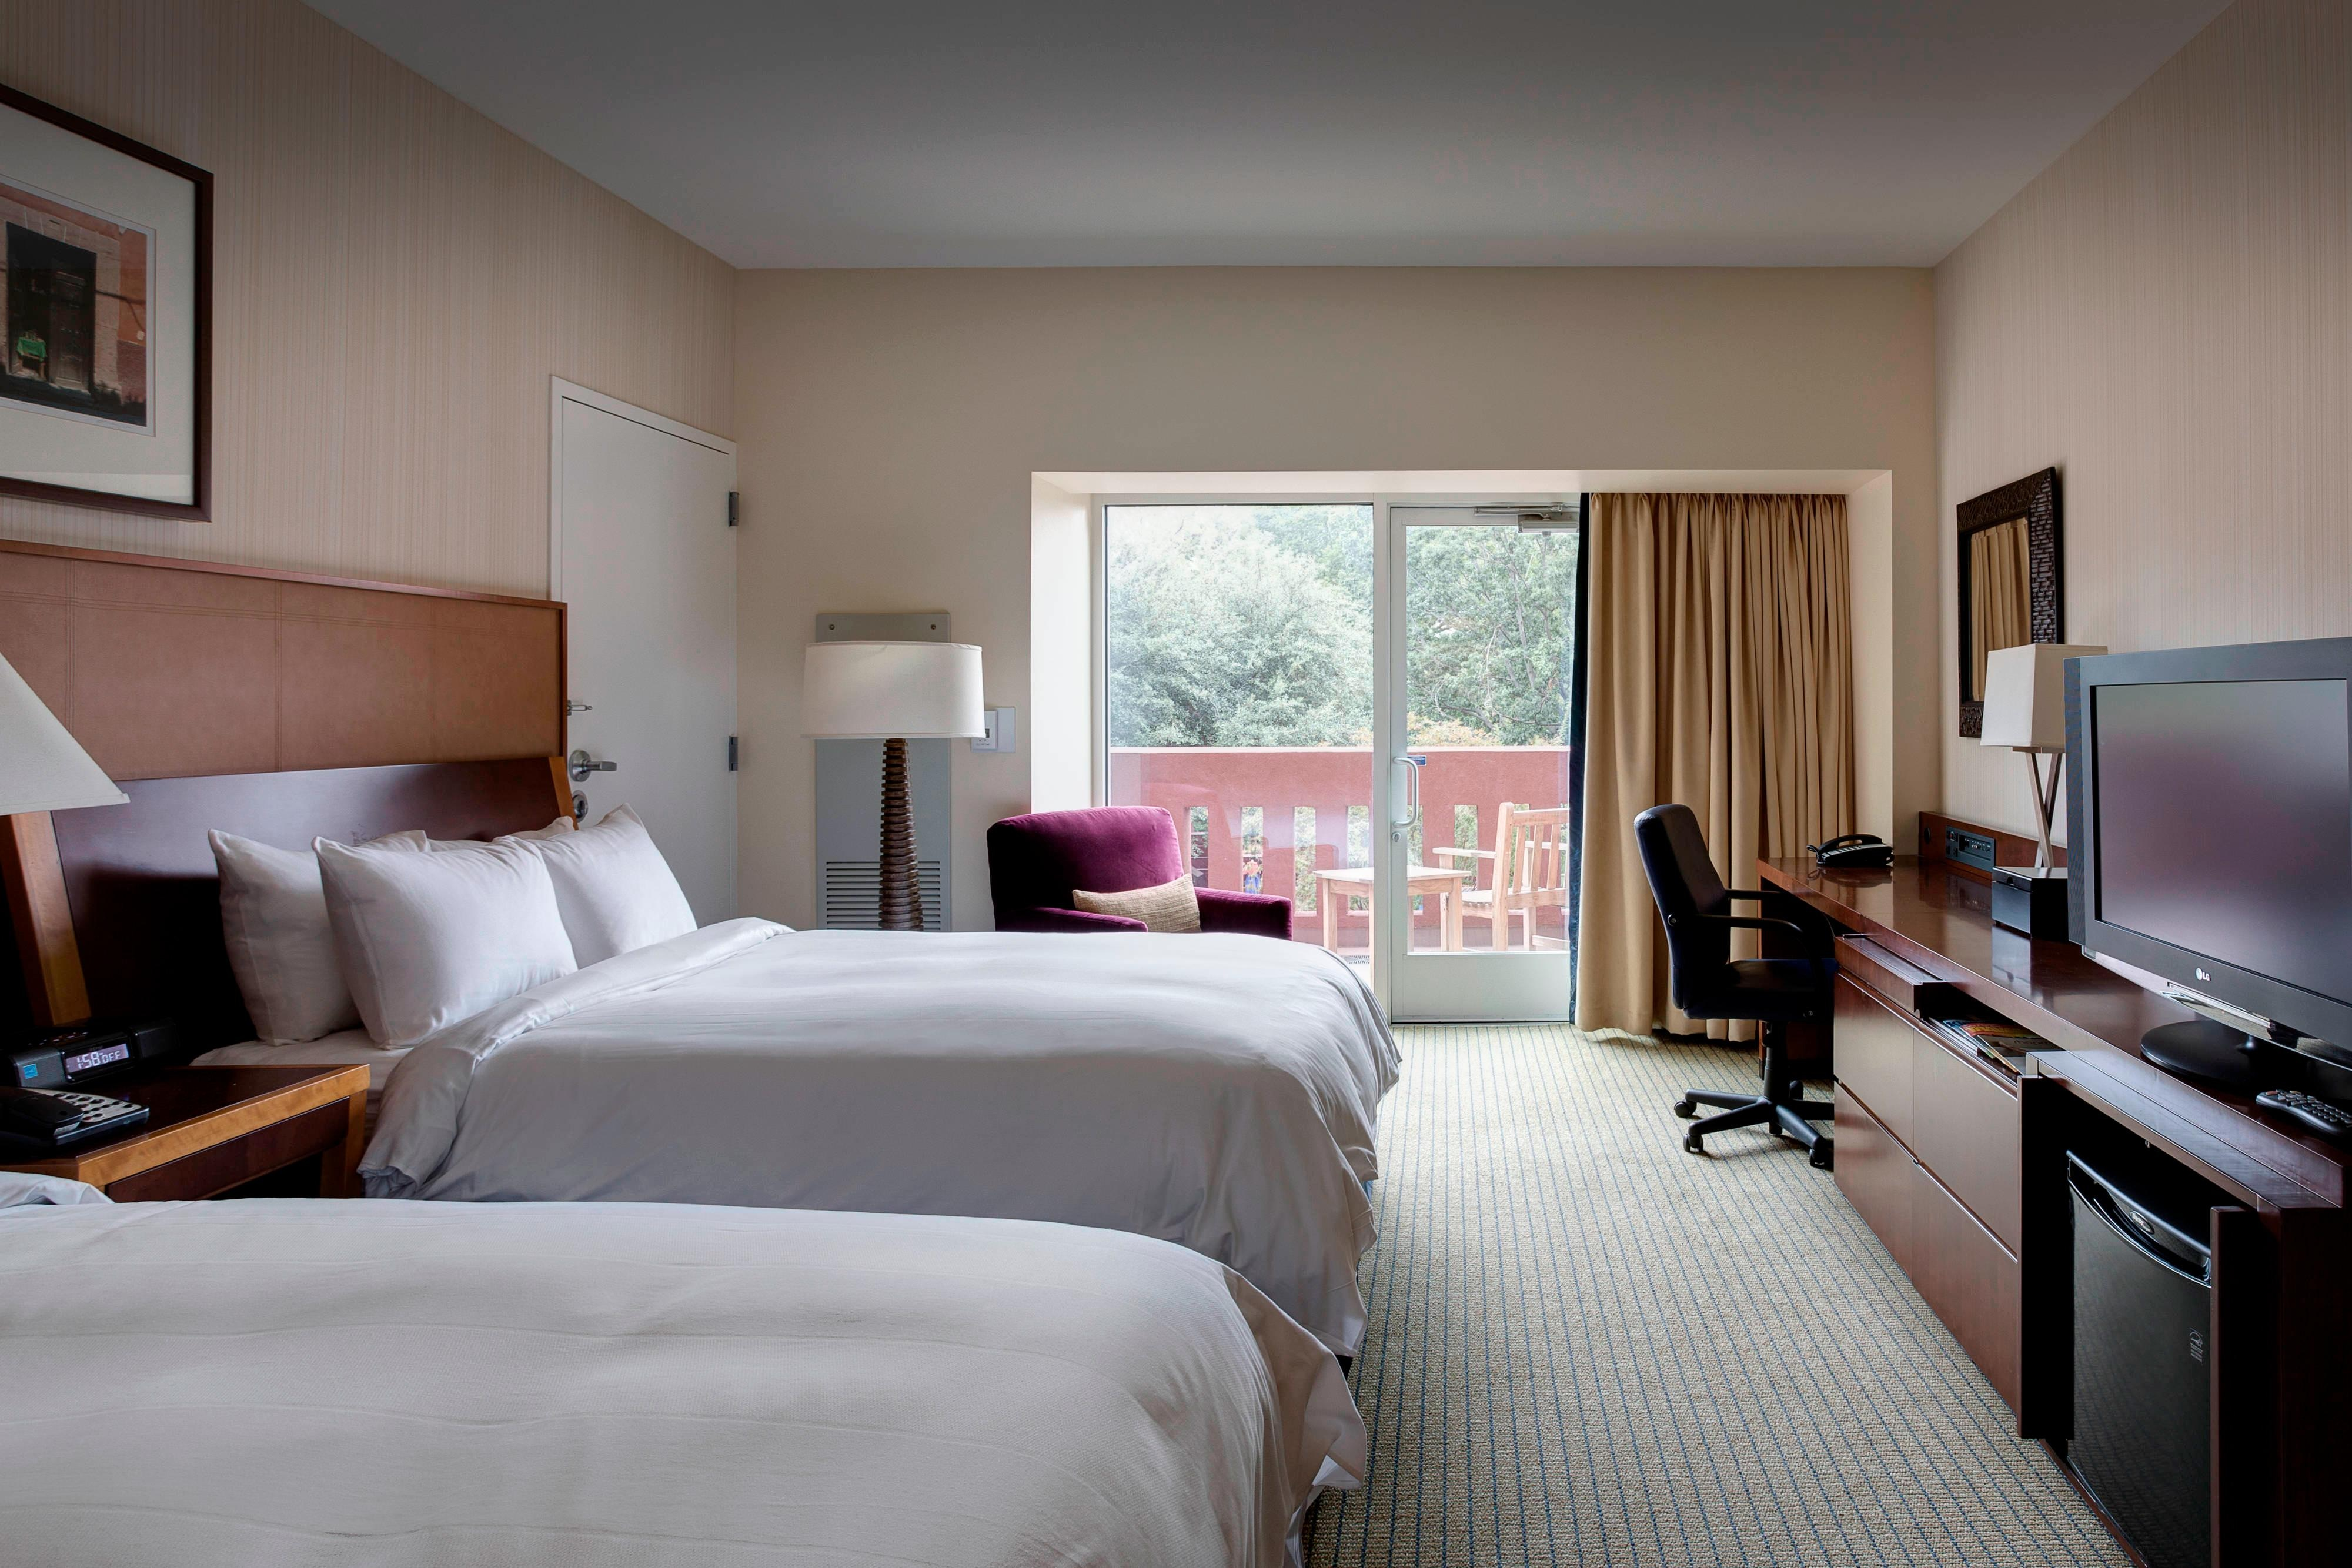 Hotel in southlake tx dallas fort worth marriott solana for 2 bedroom hotel suites in fort worth tx